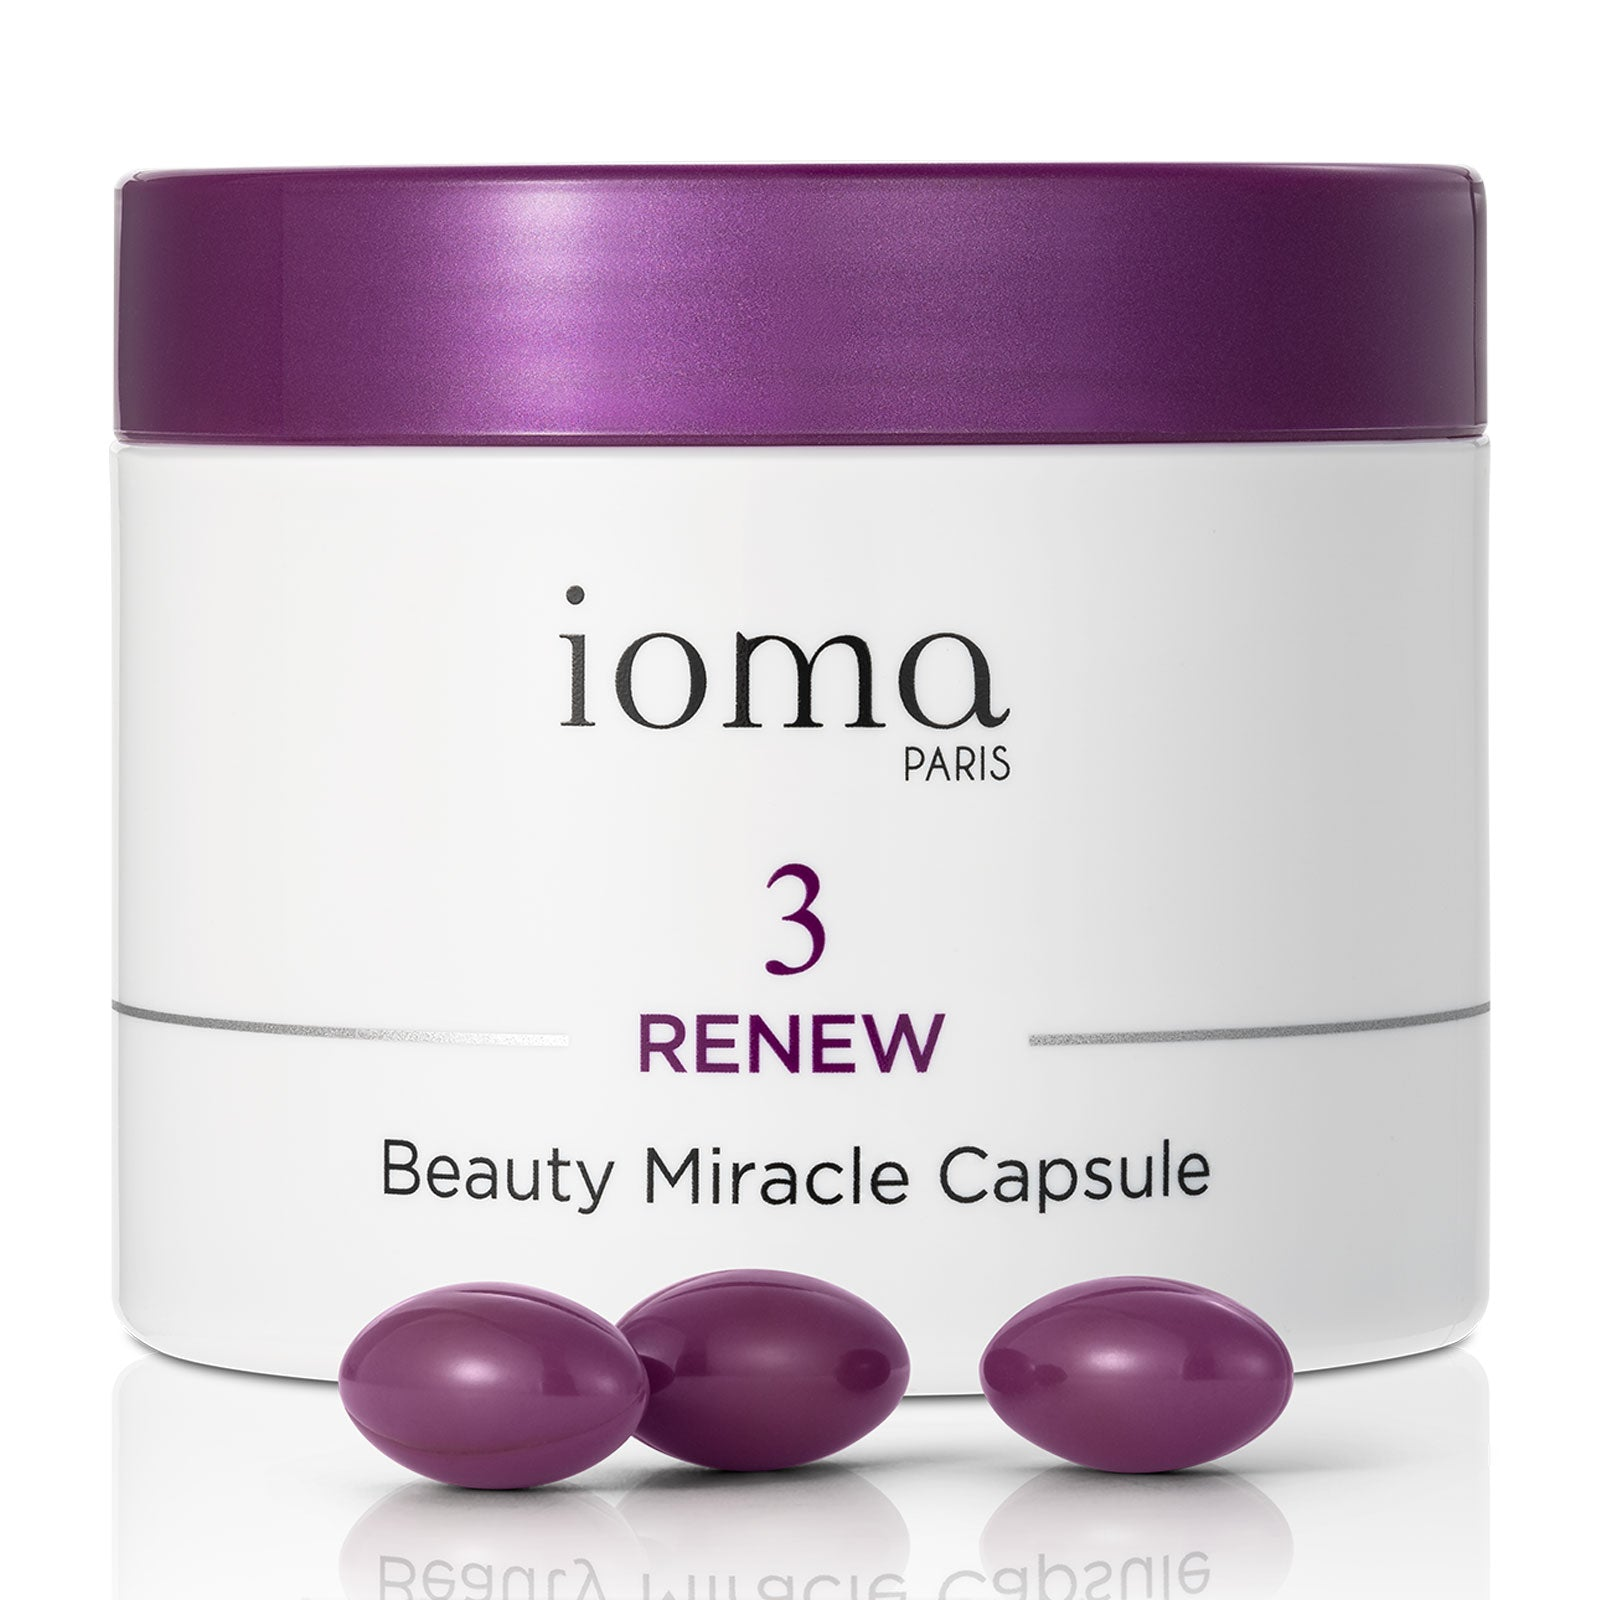 IOMA 3 RENEW Beauty Miracle Capsules x 90